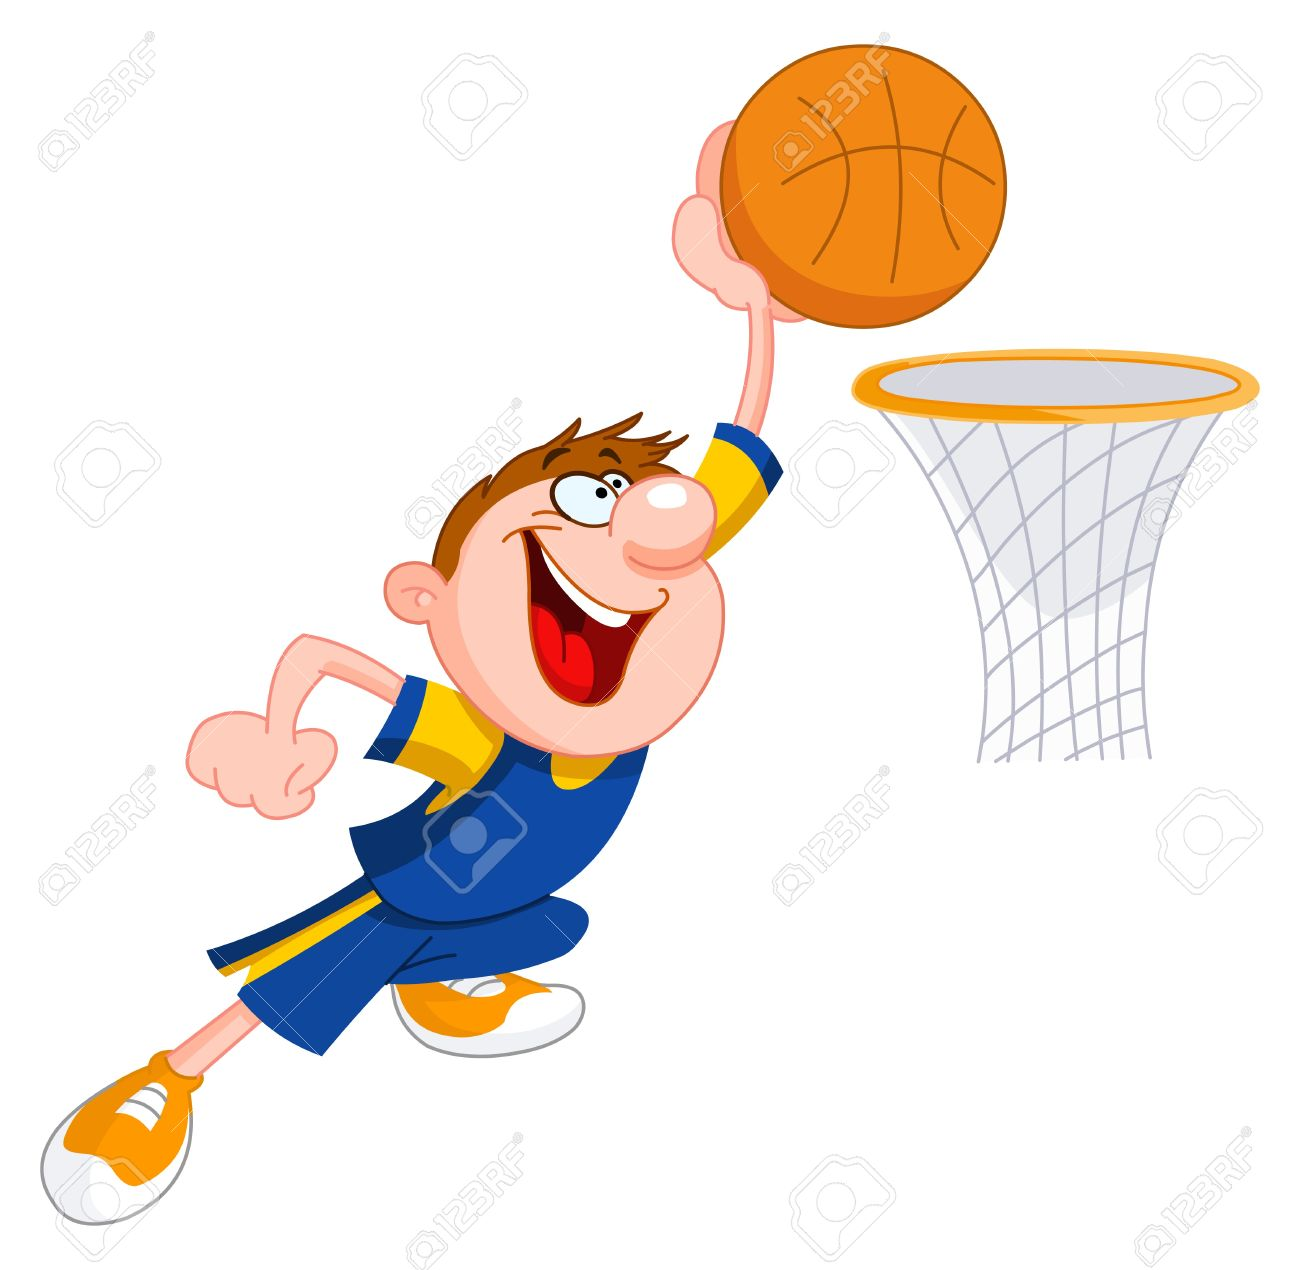 Basketball Kid Royalty Free Cliparts, Vectors, And Stock.